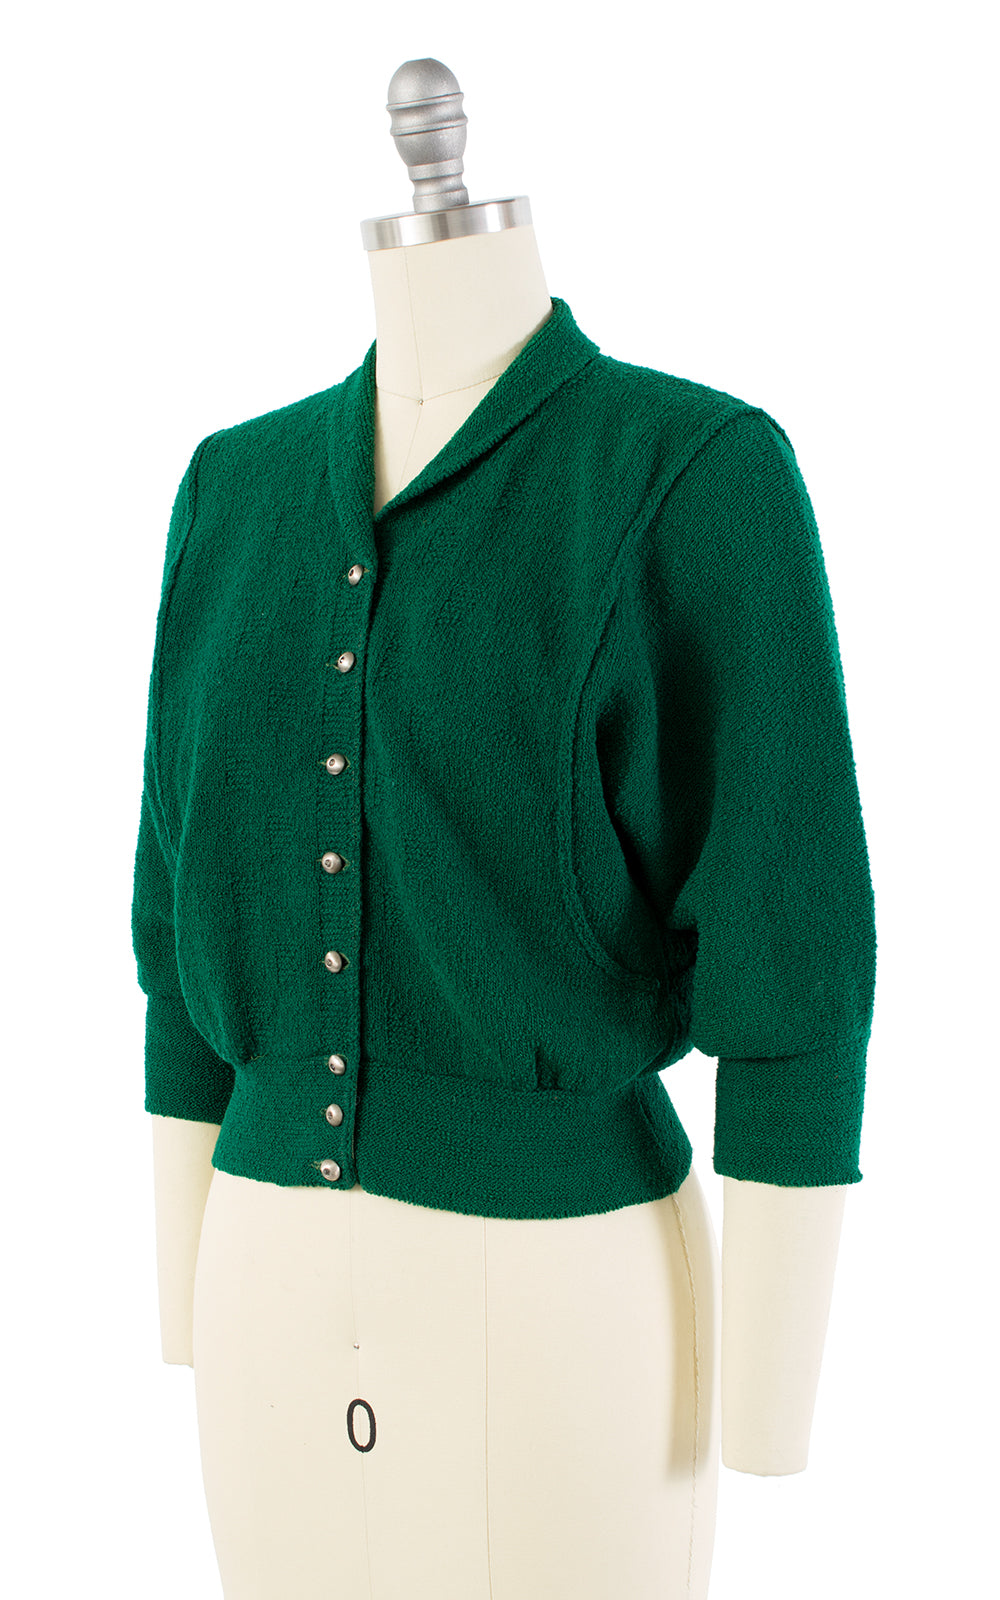 SOLD || 1950s Forest Green Knit Wool Cardigan | small/medium